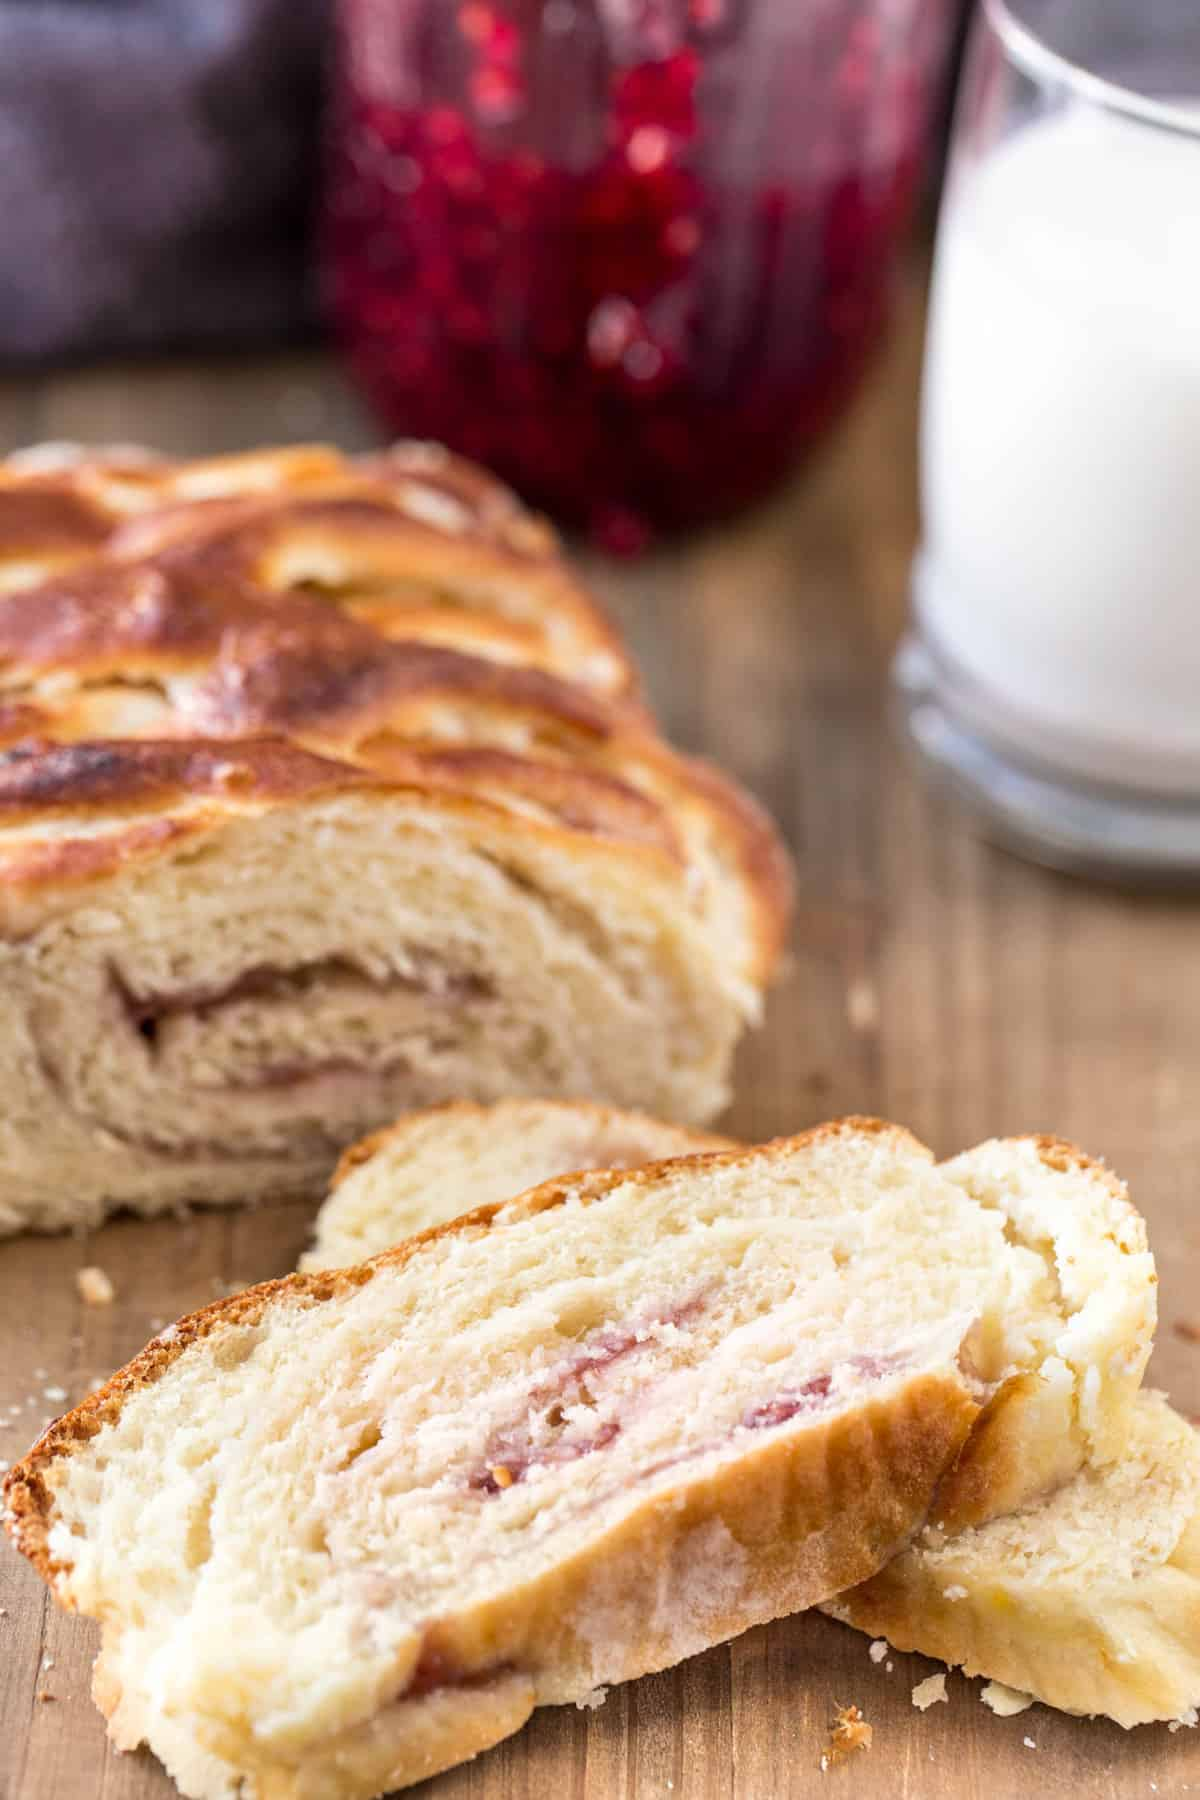 Jam and cream cheese filled sweet bread recipe on a board with slices and a glass of milk.